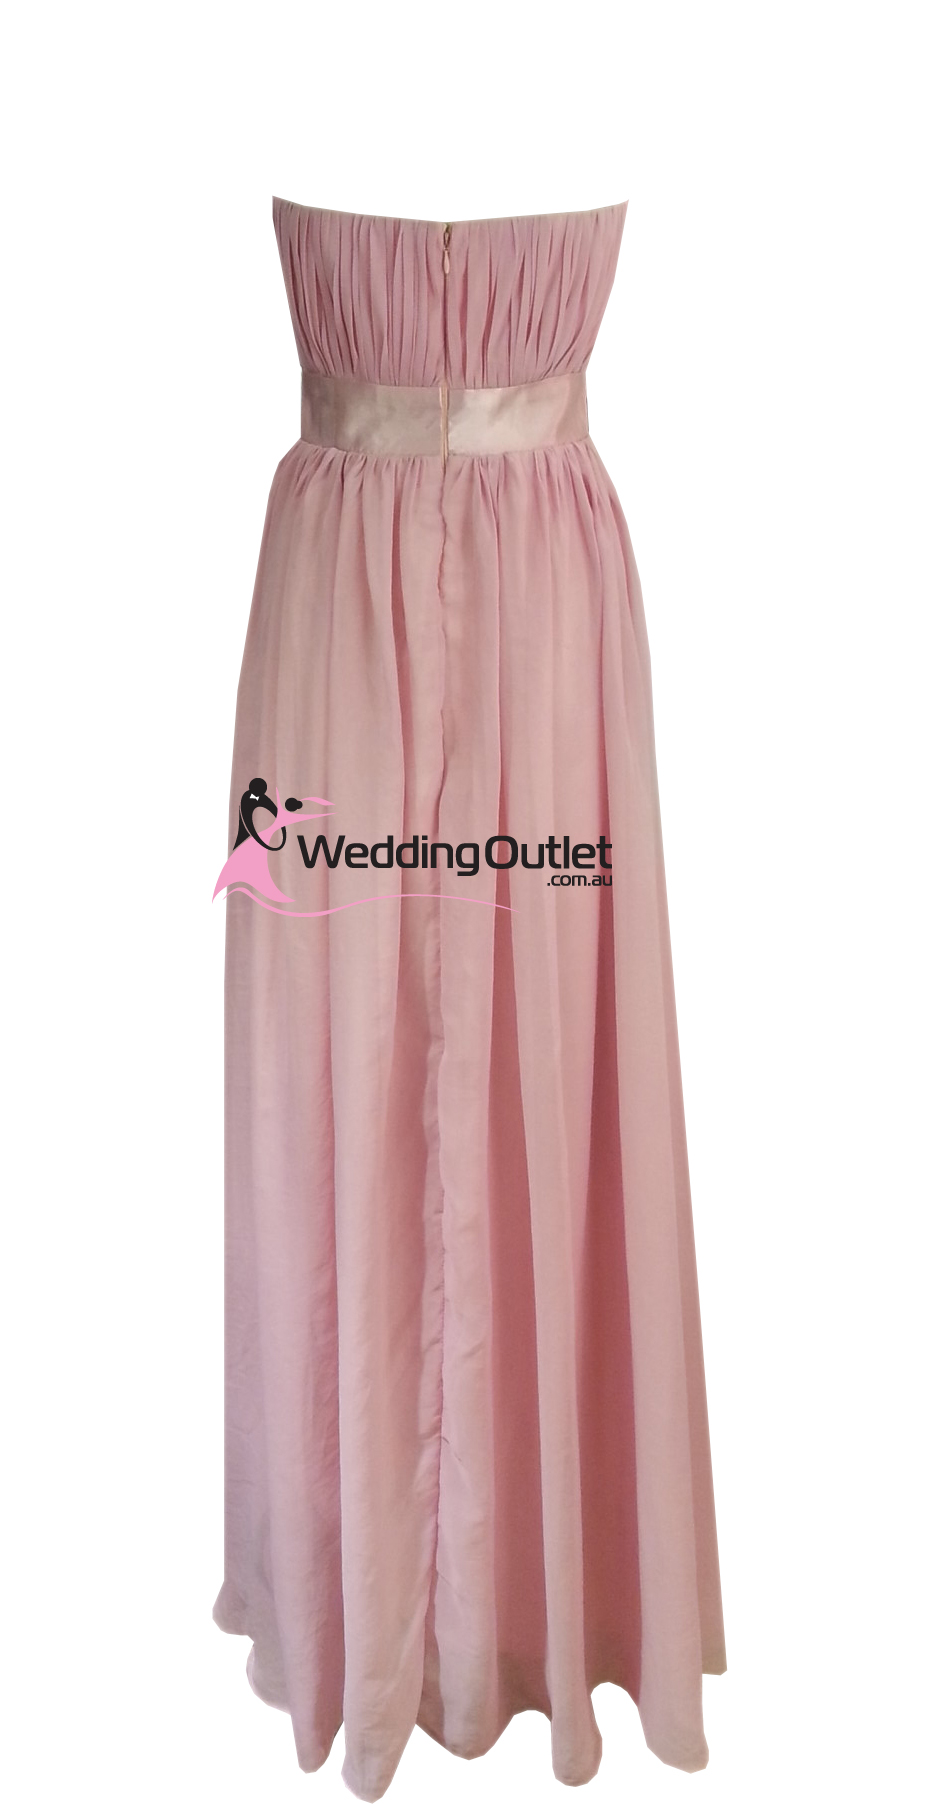 Dusty Pink Strapless Bridesmaid Dresses Style #V101 ...